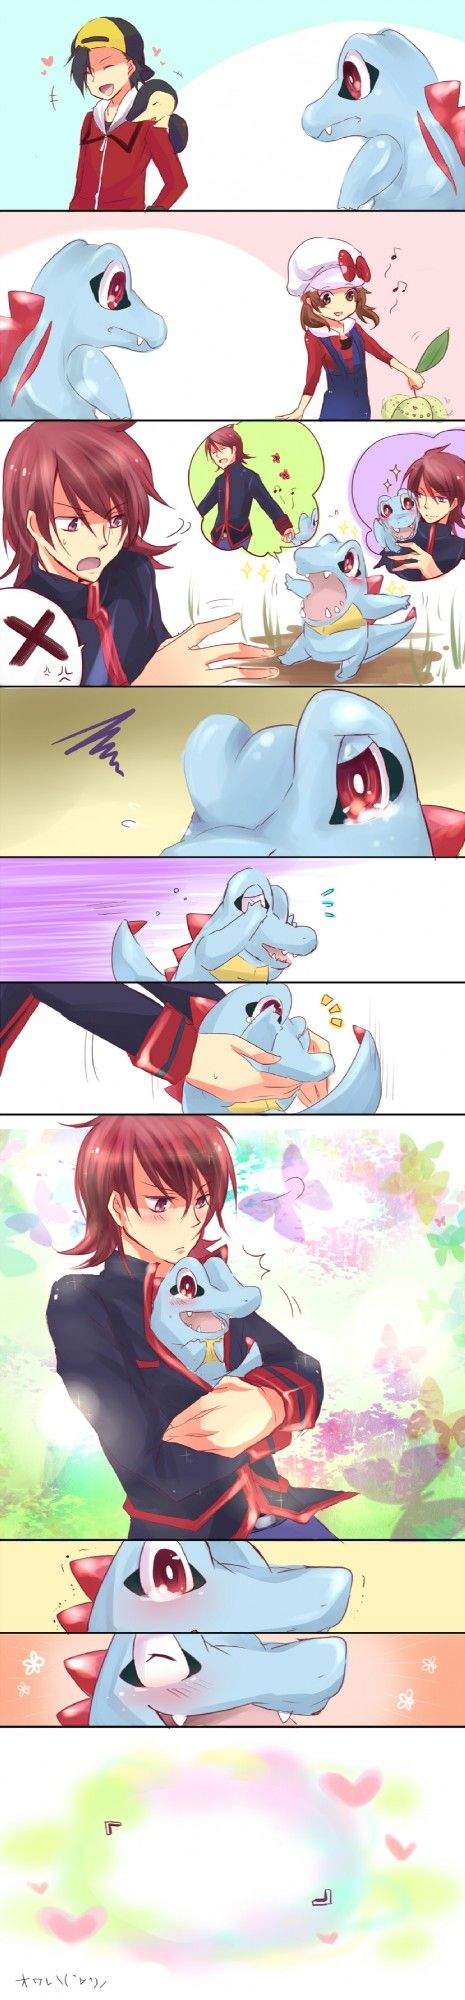 Tsundere little Silver XD  Silver is my fav trainer after red & blue